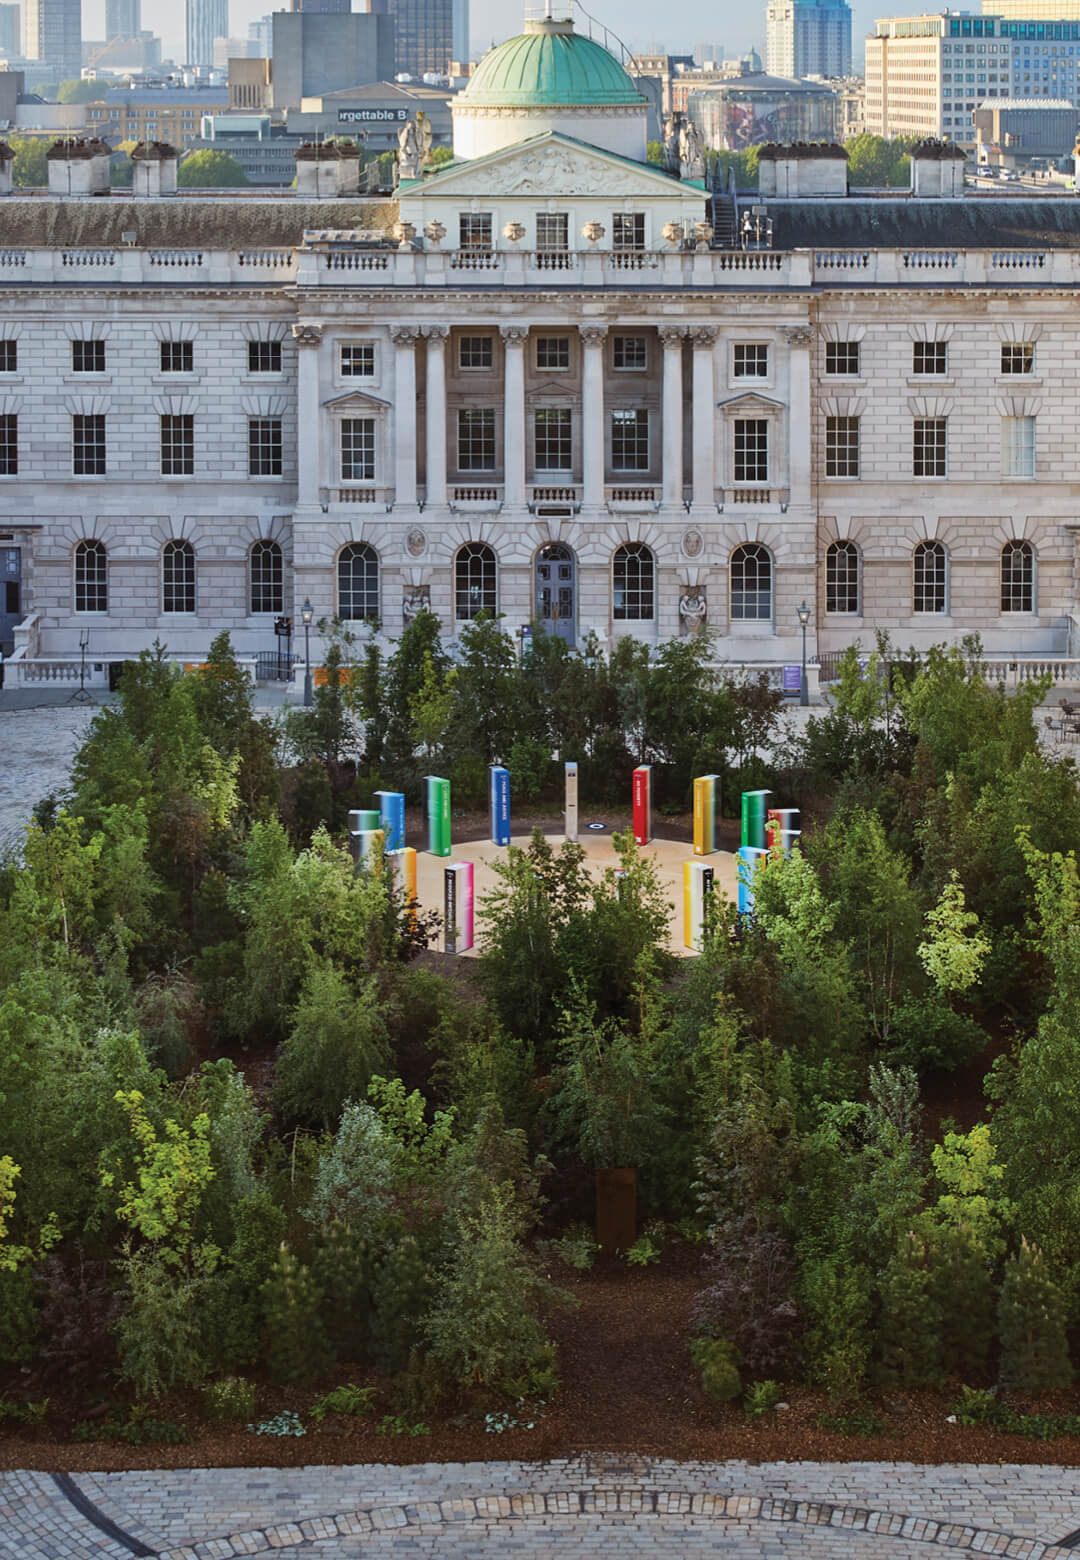 Forest for Change, designed by Es Devlin, graces the courtyard of Somerset House in London, welcoming visitors to the 2021 London Design Biennale | Forest for Change by Es Devlin | STIRworld